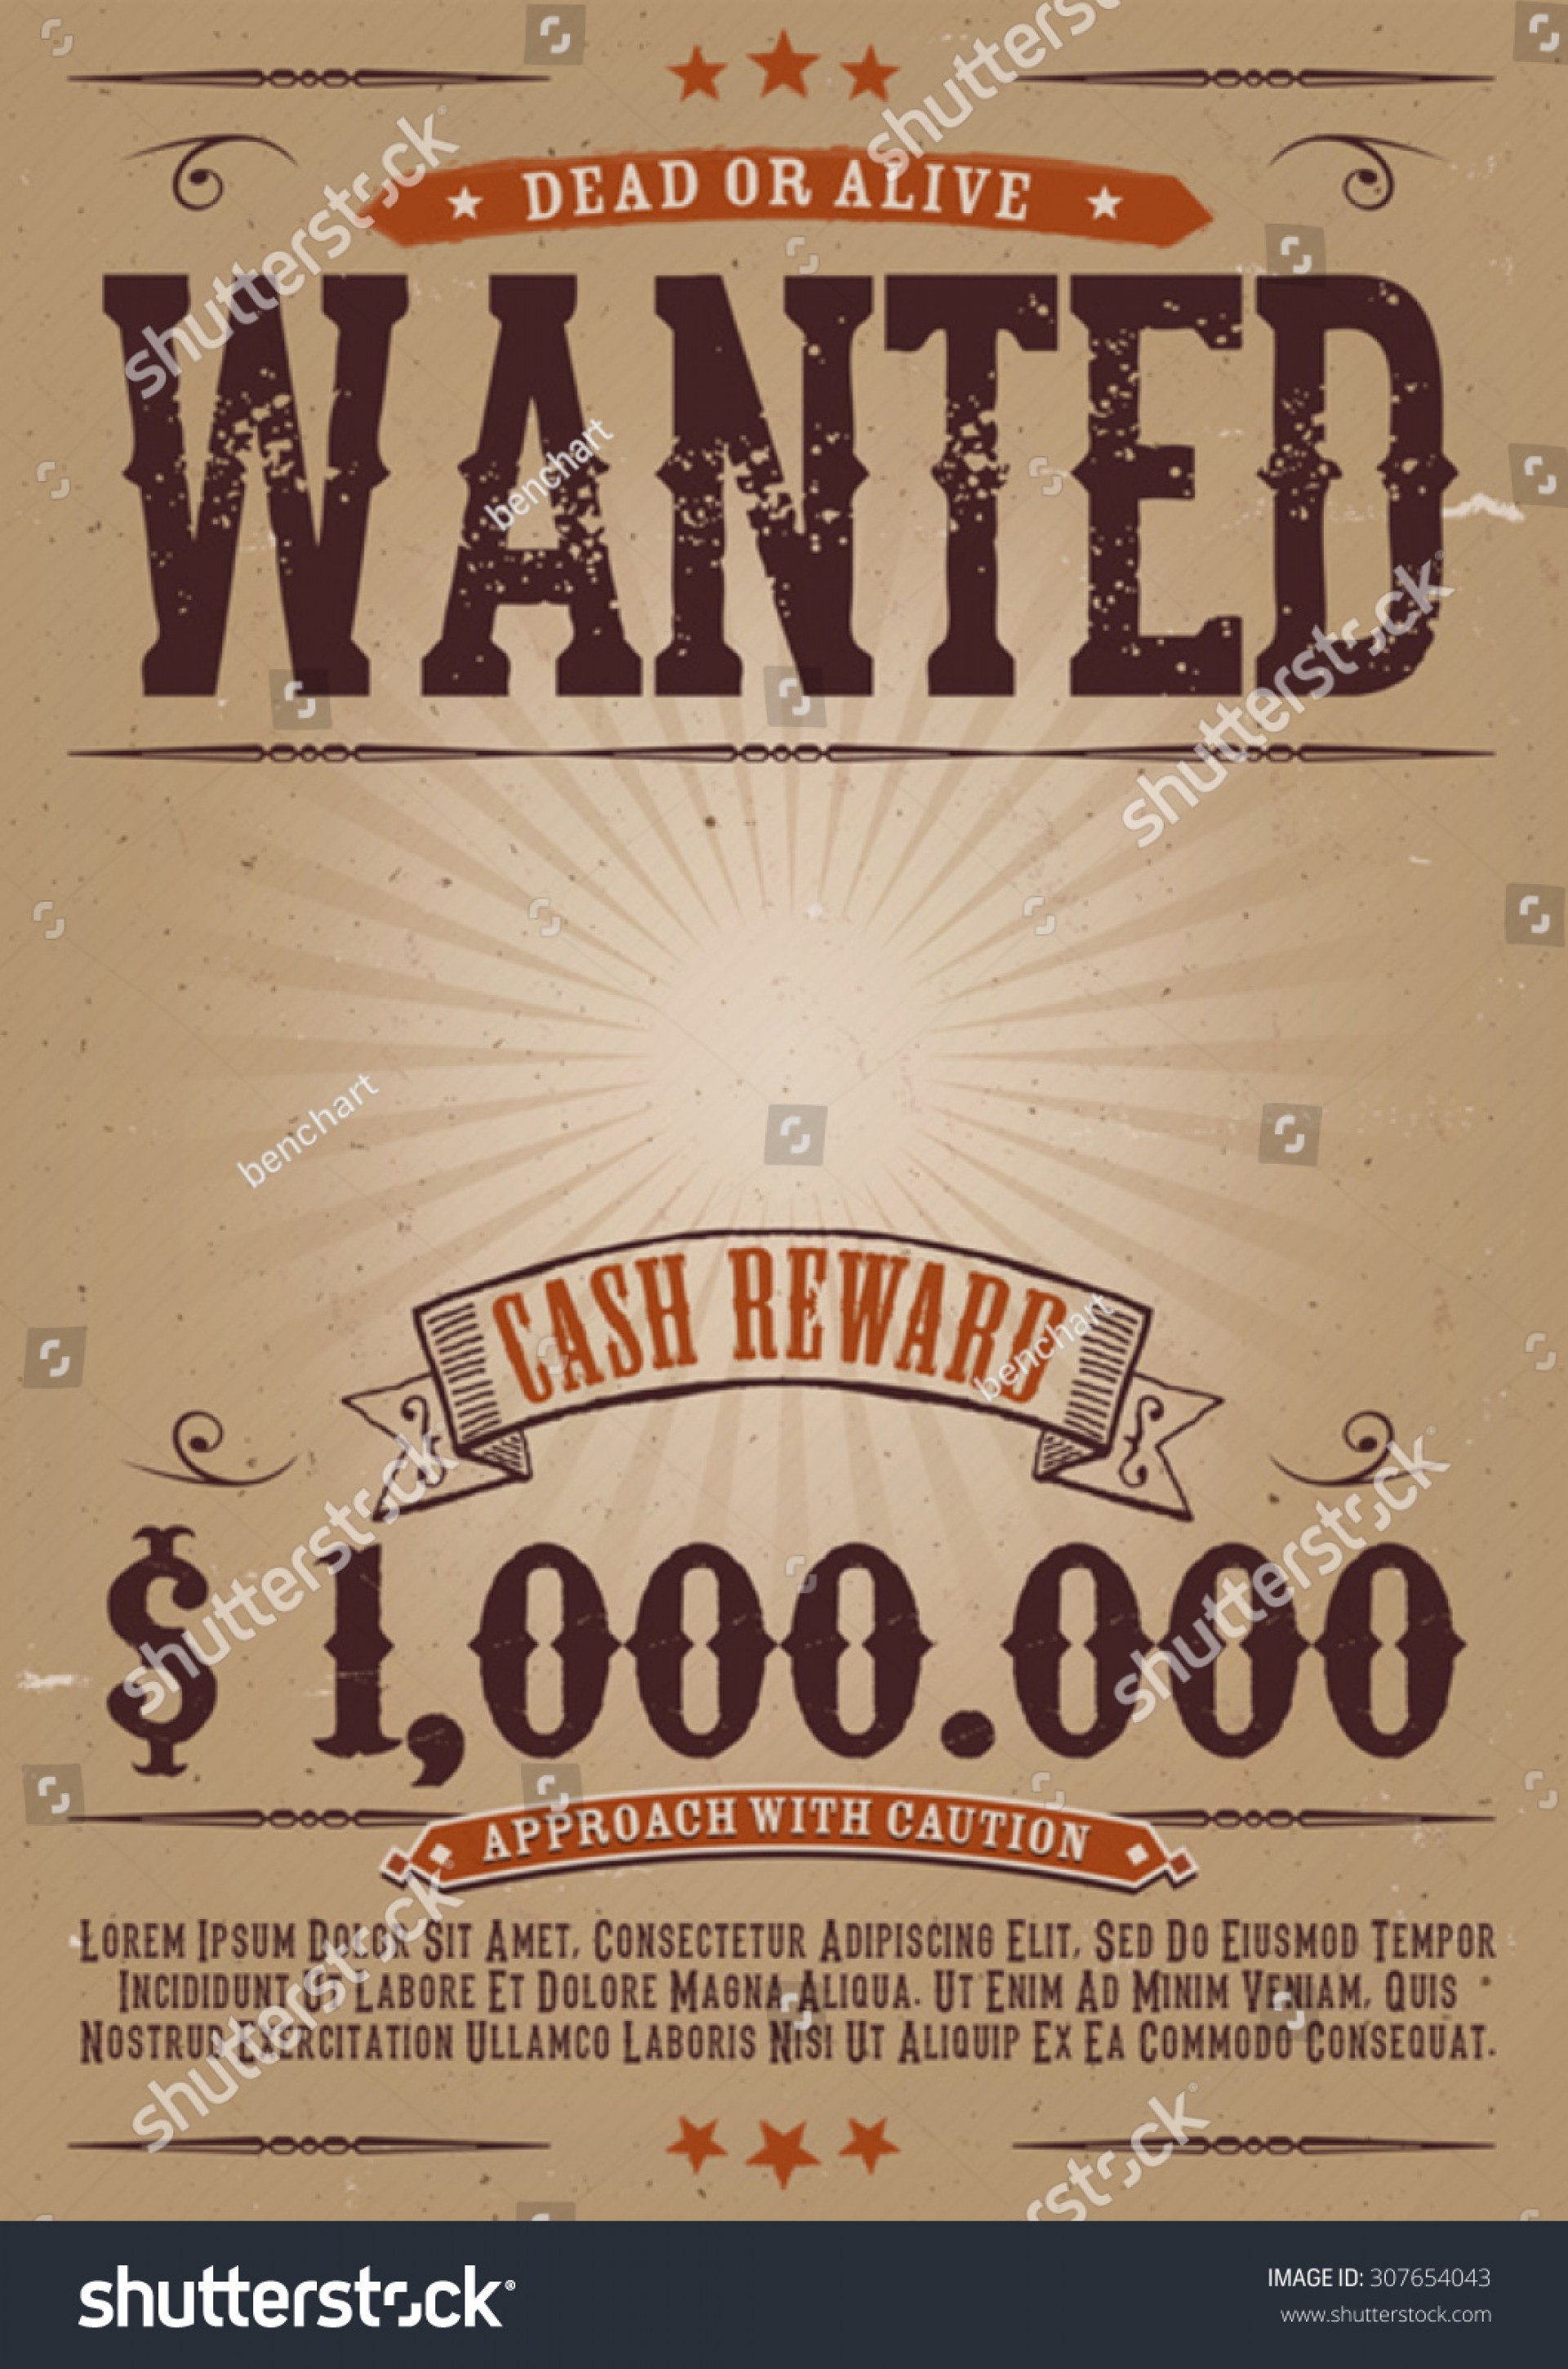 011 Wanted Template For Students Poster Free Filename.